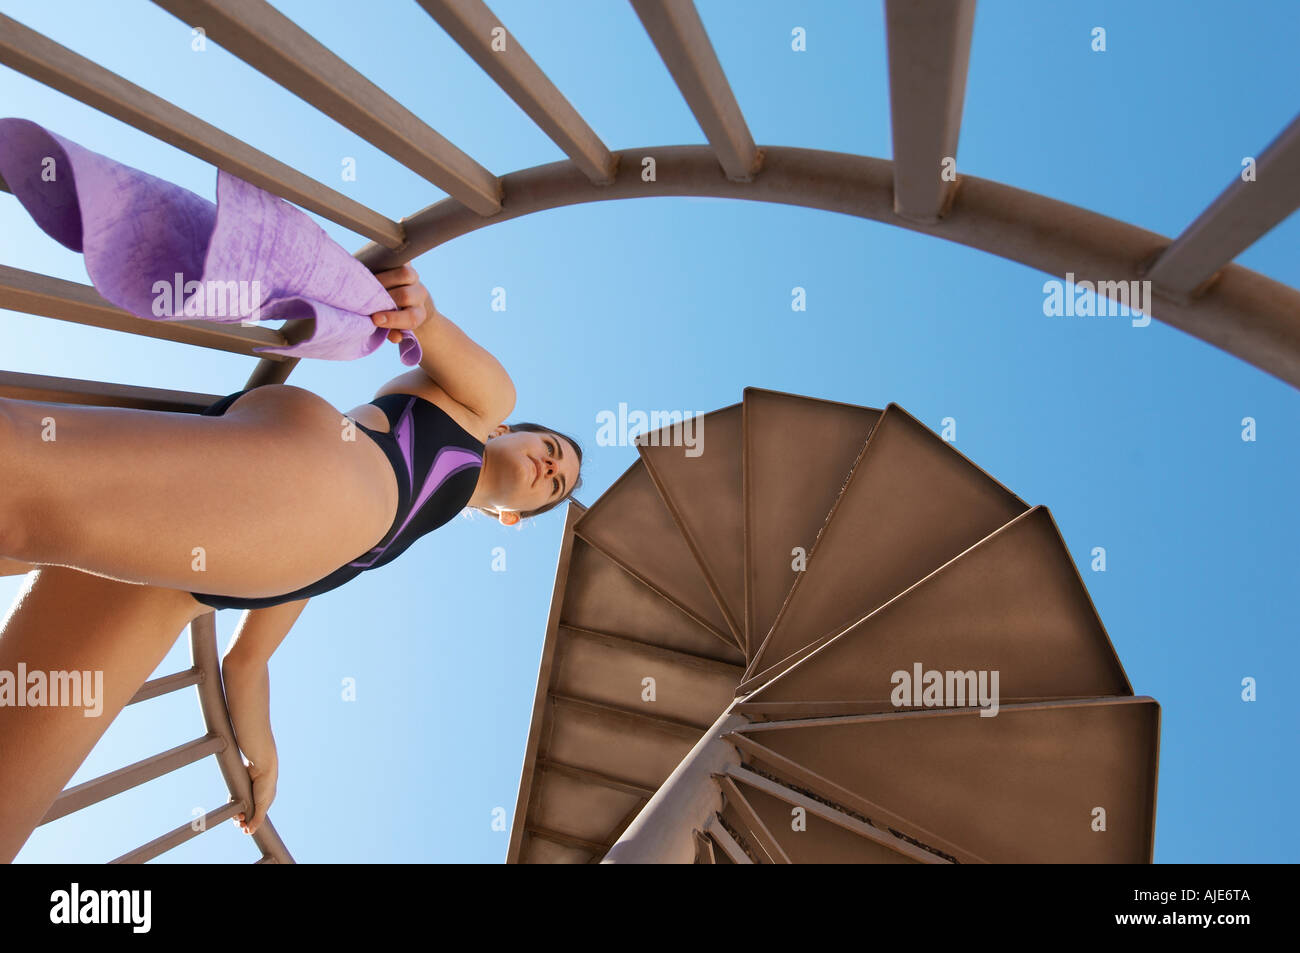 Female diver on spiral staircase to board, view from below - Stock Image